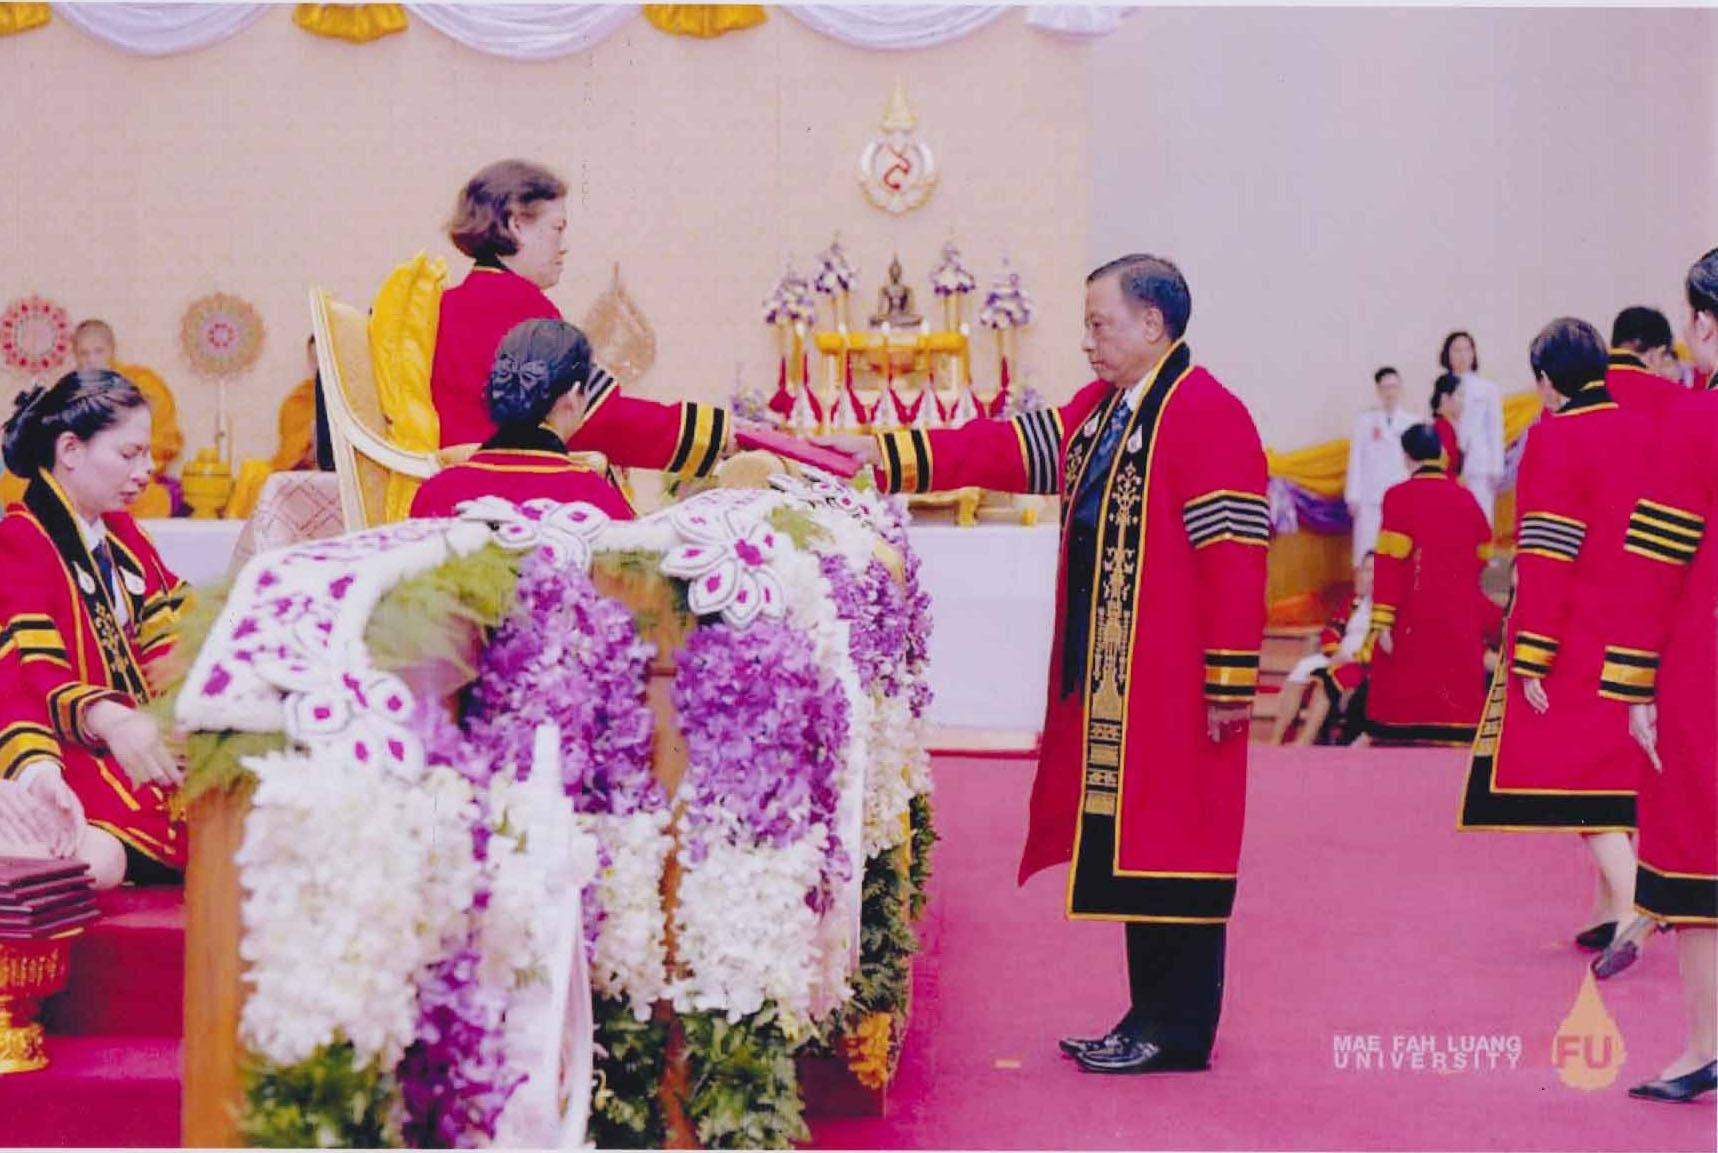 PhD in Social Science is being conferred on Union Minister U Htay Aung by Her Royal Highness Princess Maha Chakri Sirindhorn. Photo: MNA